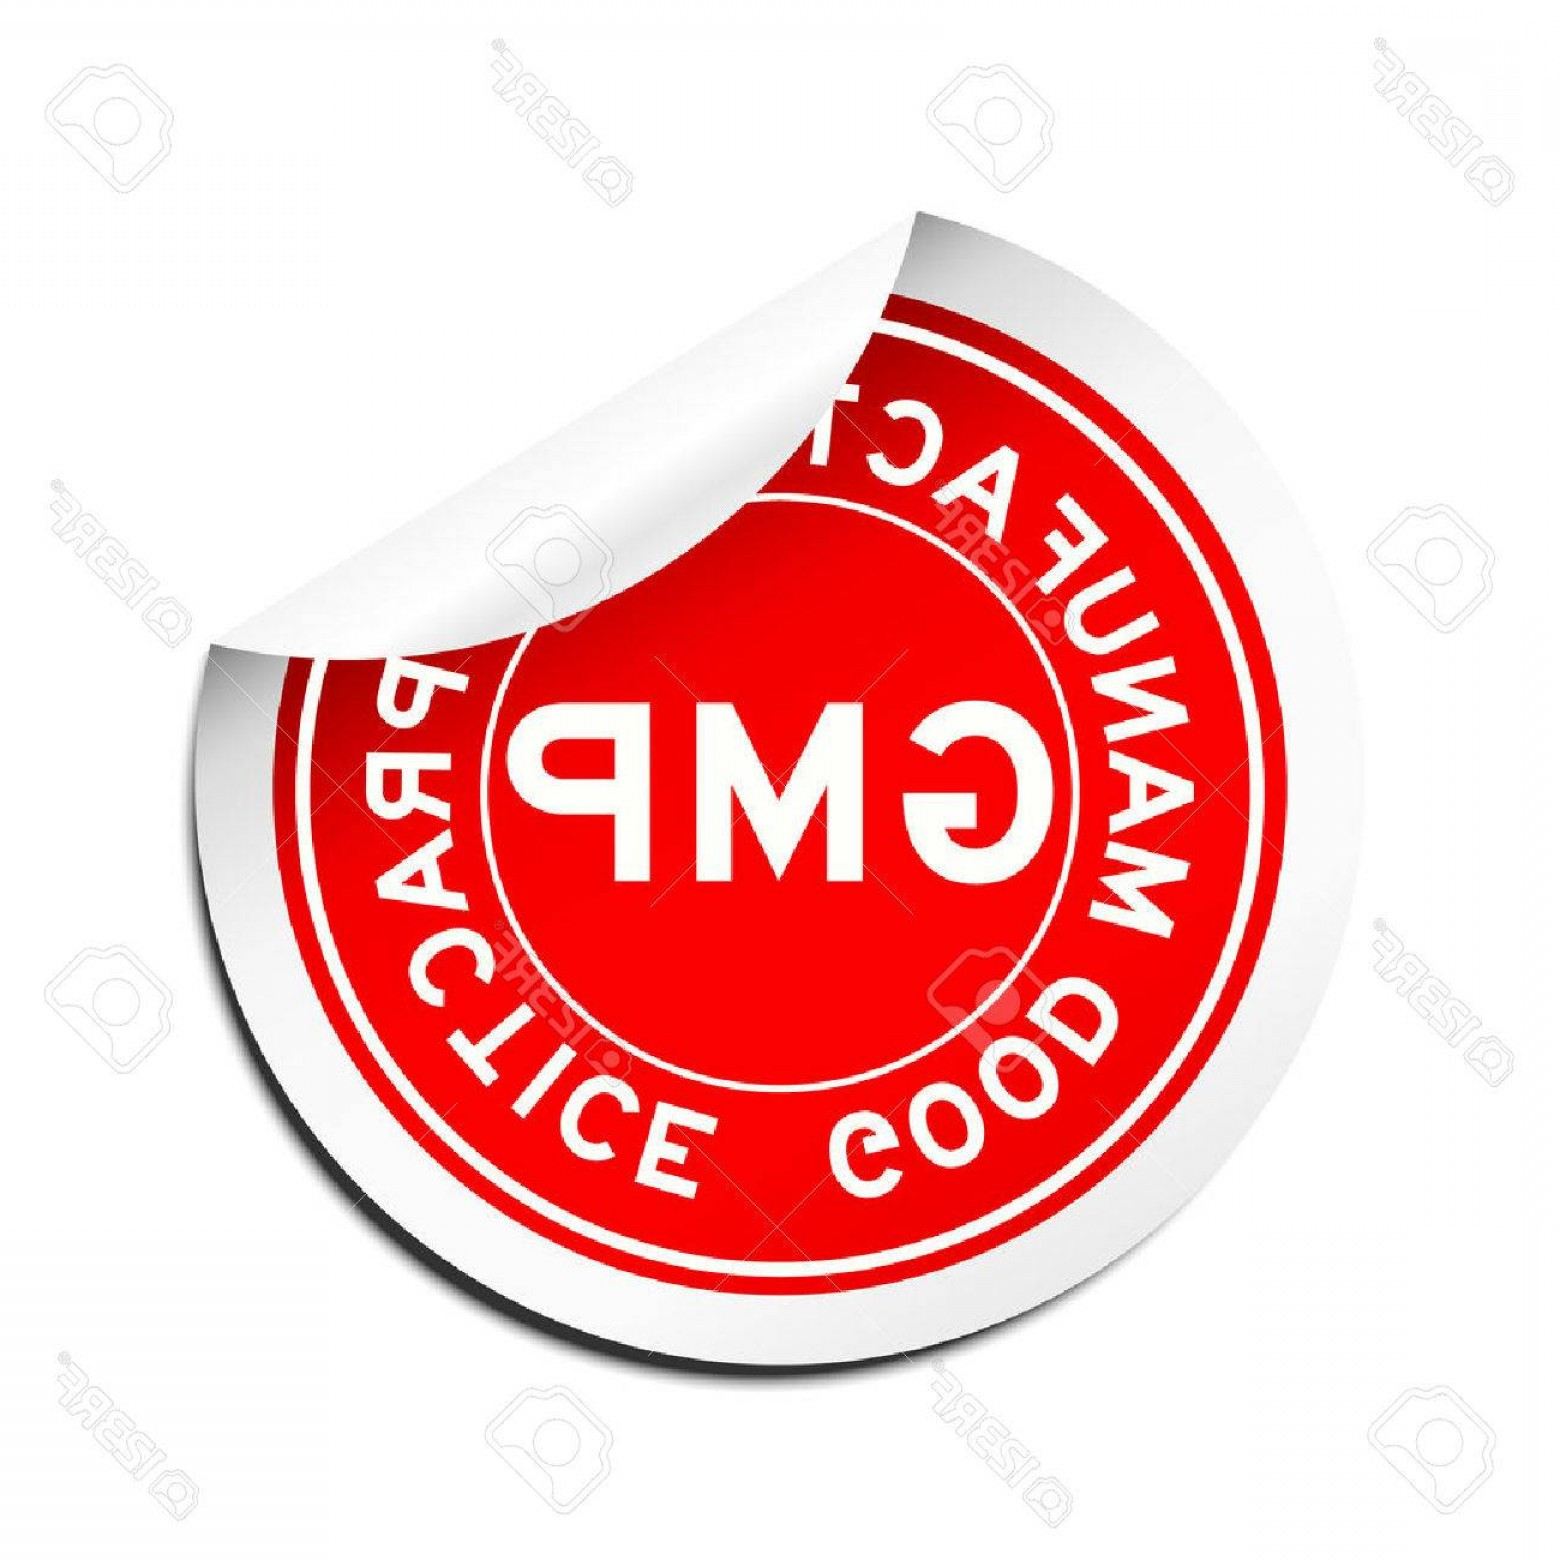 GMP Logo Vector: Photostock Vector Peel Red Gmp Good Manufacturing Practice Round Sticker